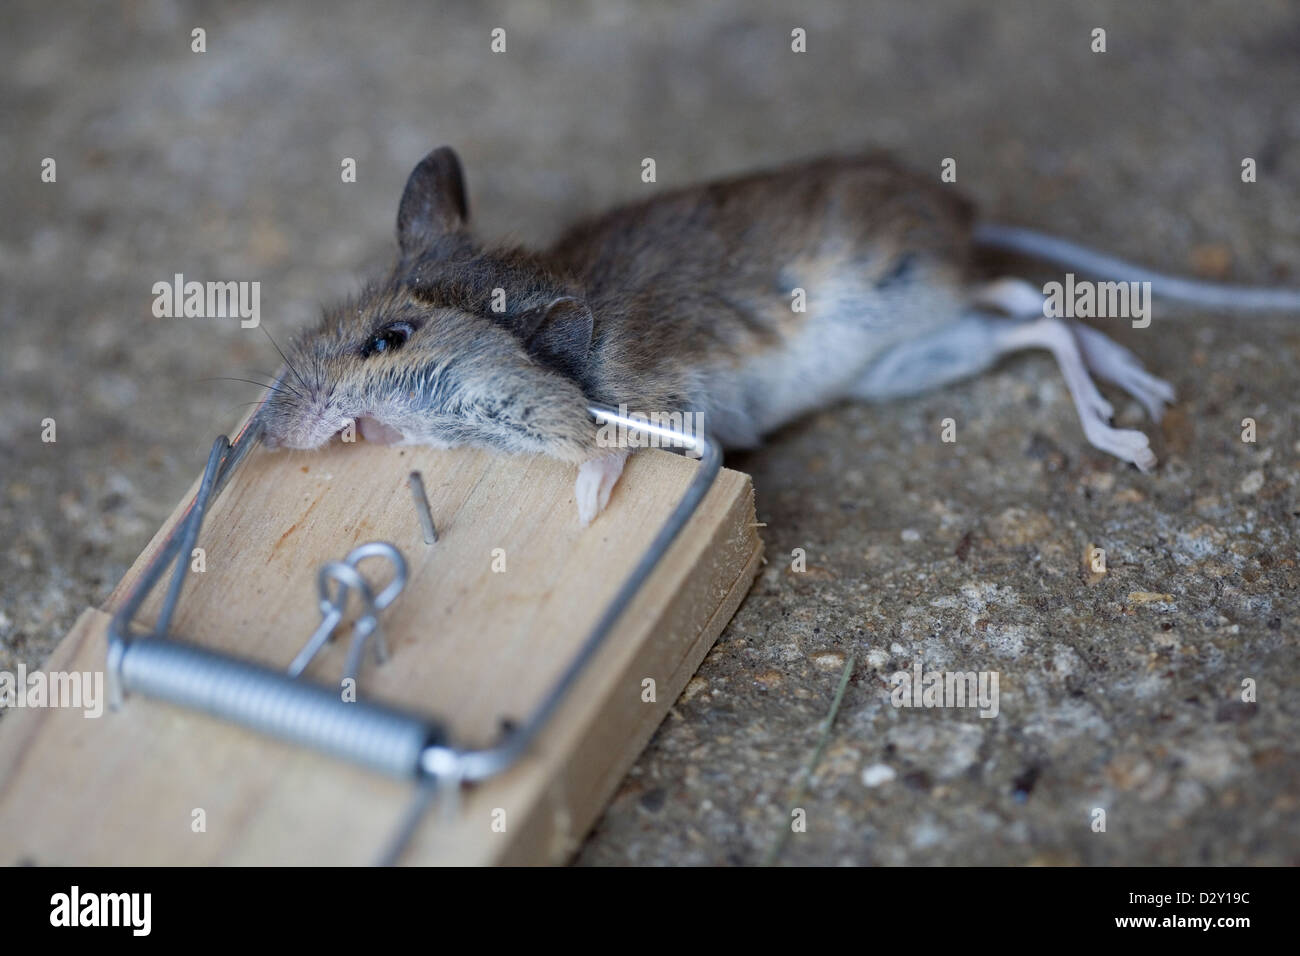 a common house mouse mus musculus lying dead in a